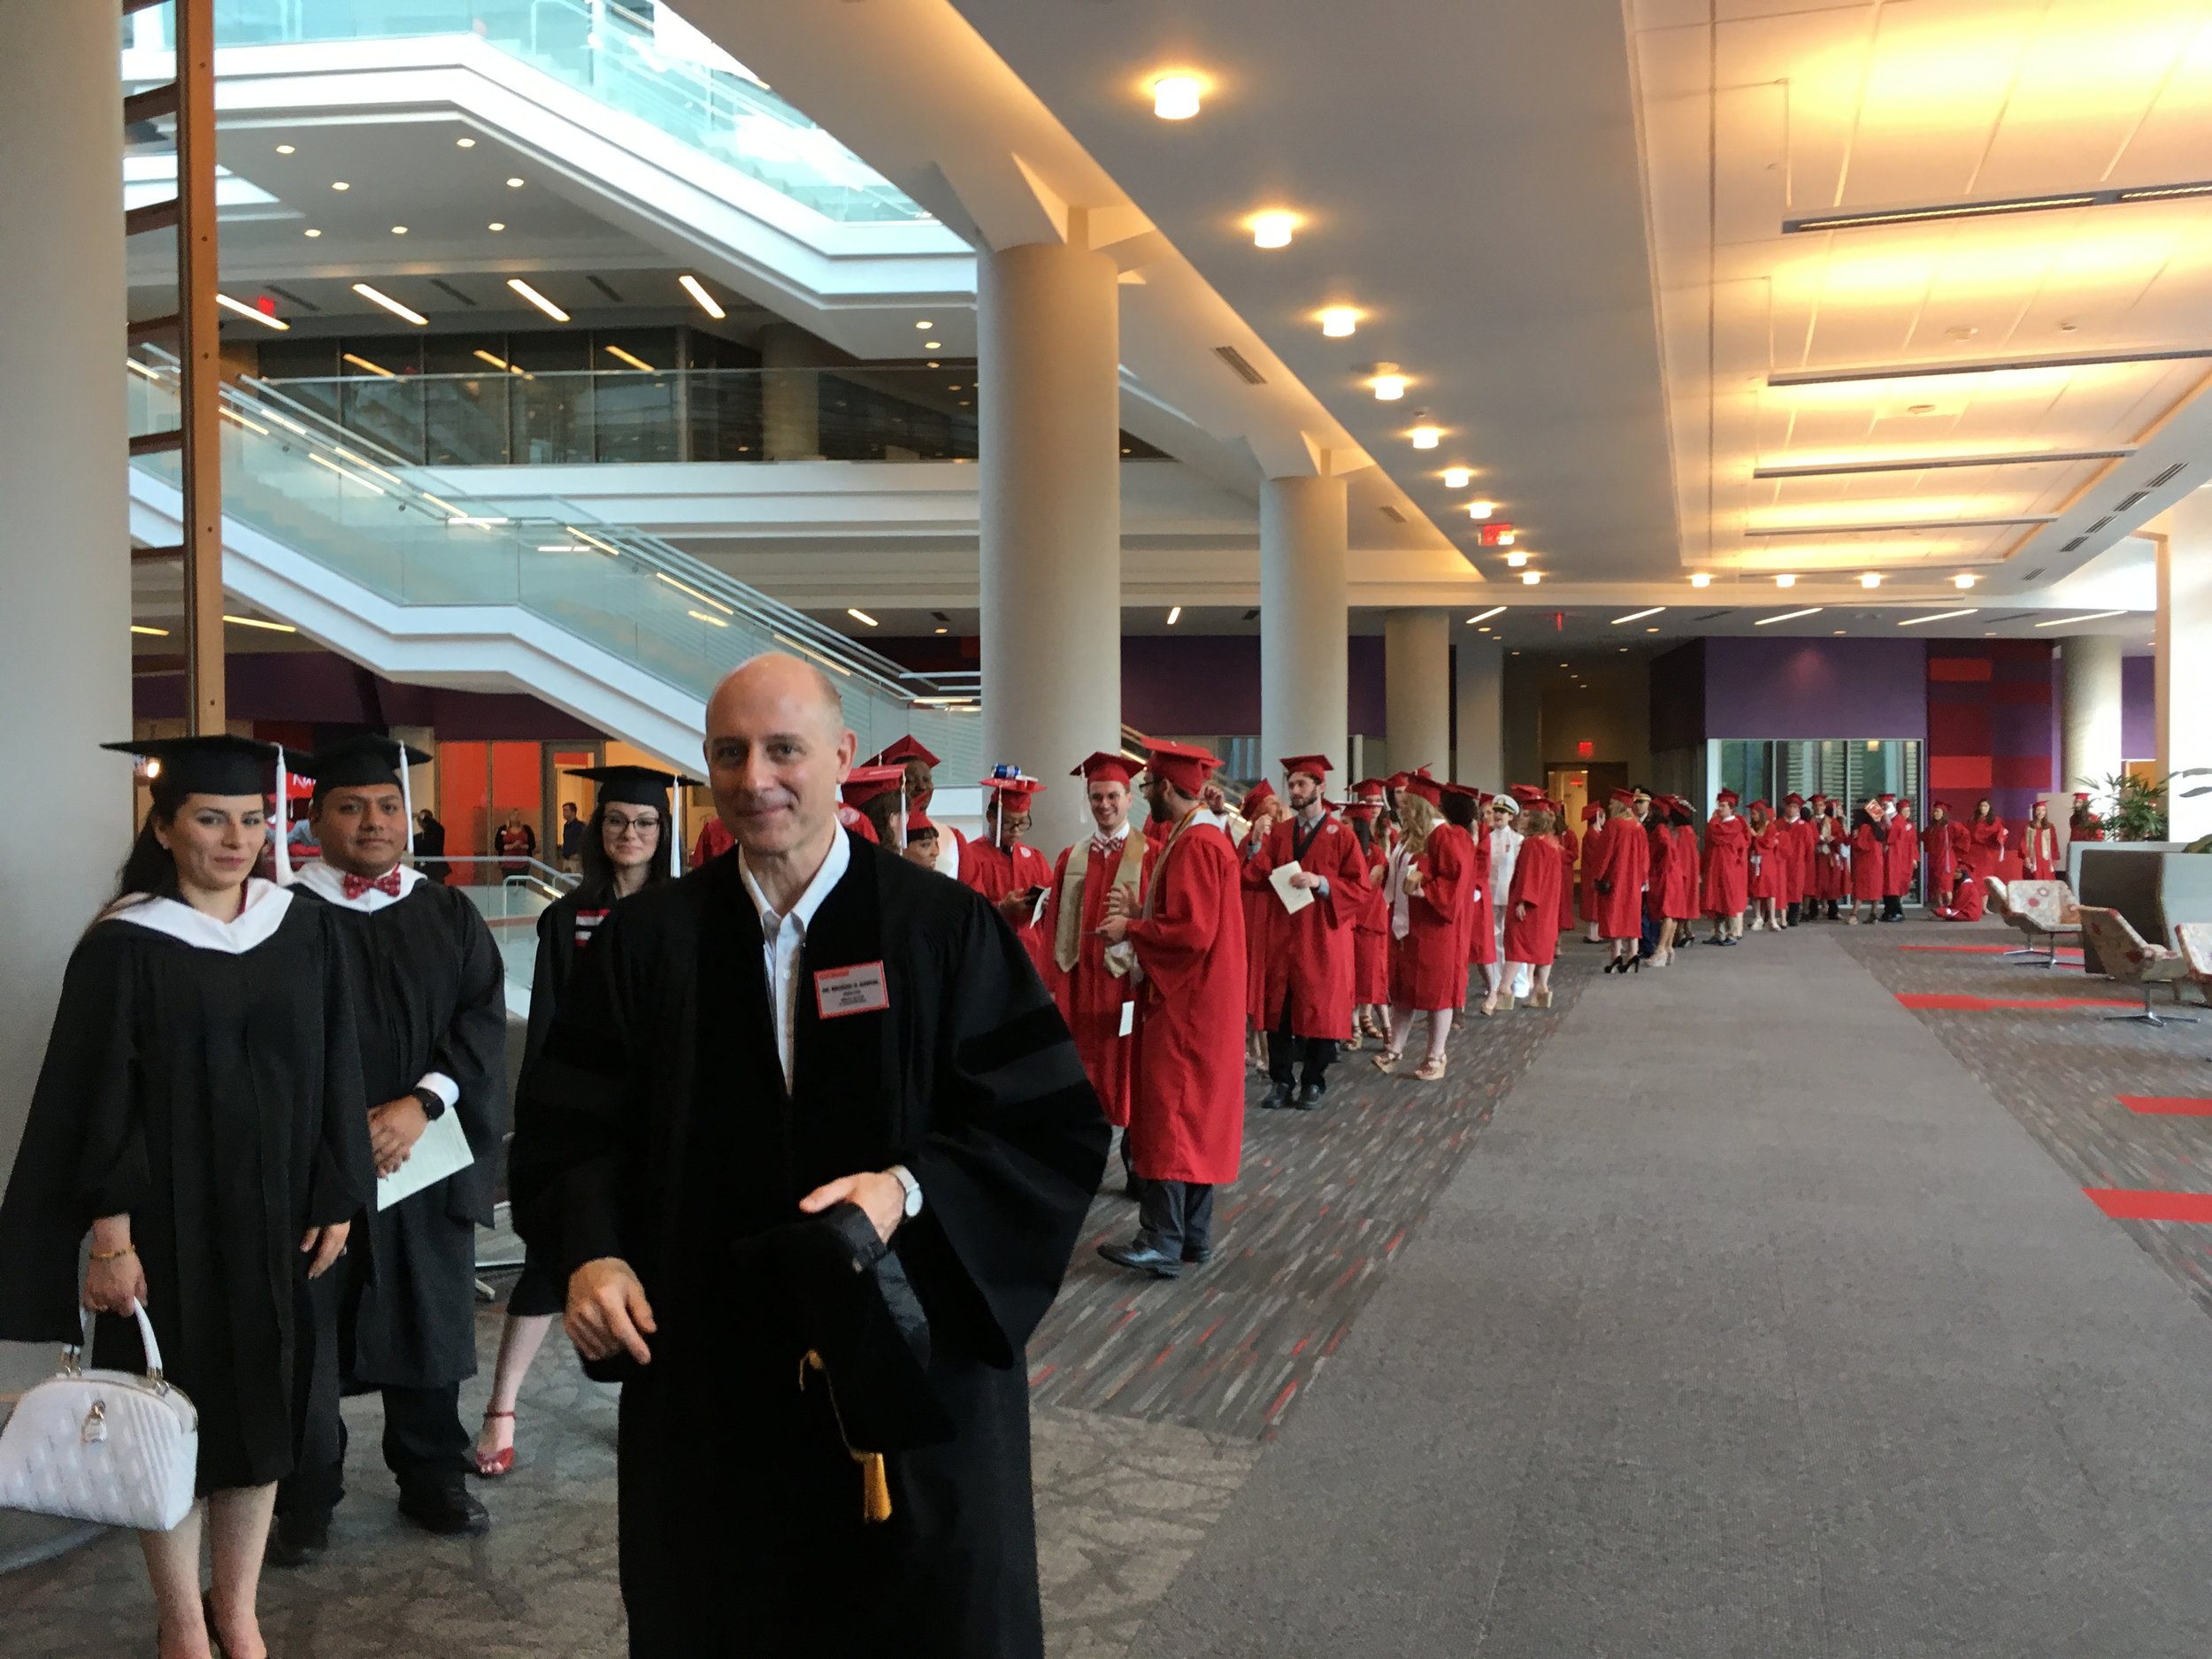 Dr. Michael Garval, Director of Masters of Arts in Liberal Studies,and graduating students about to process